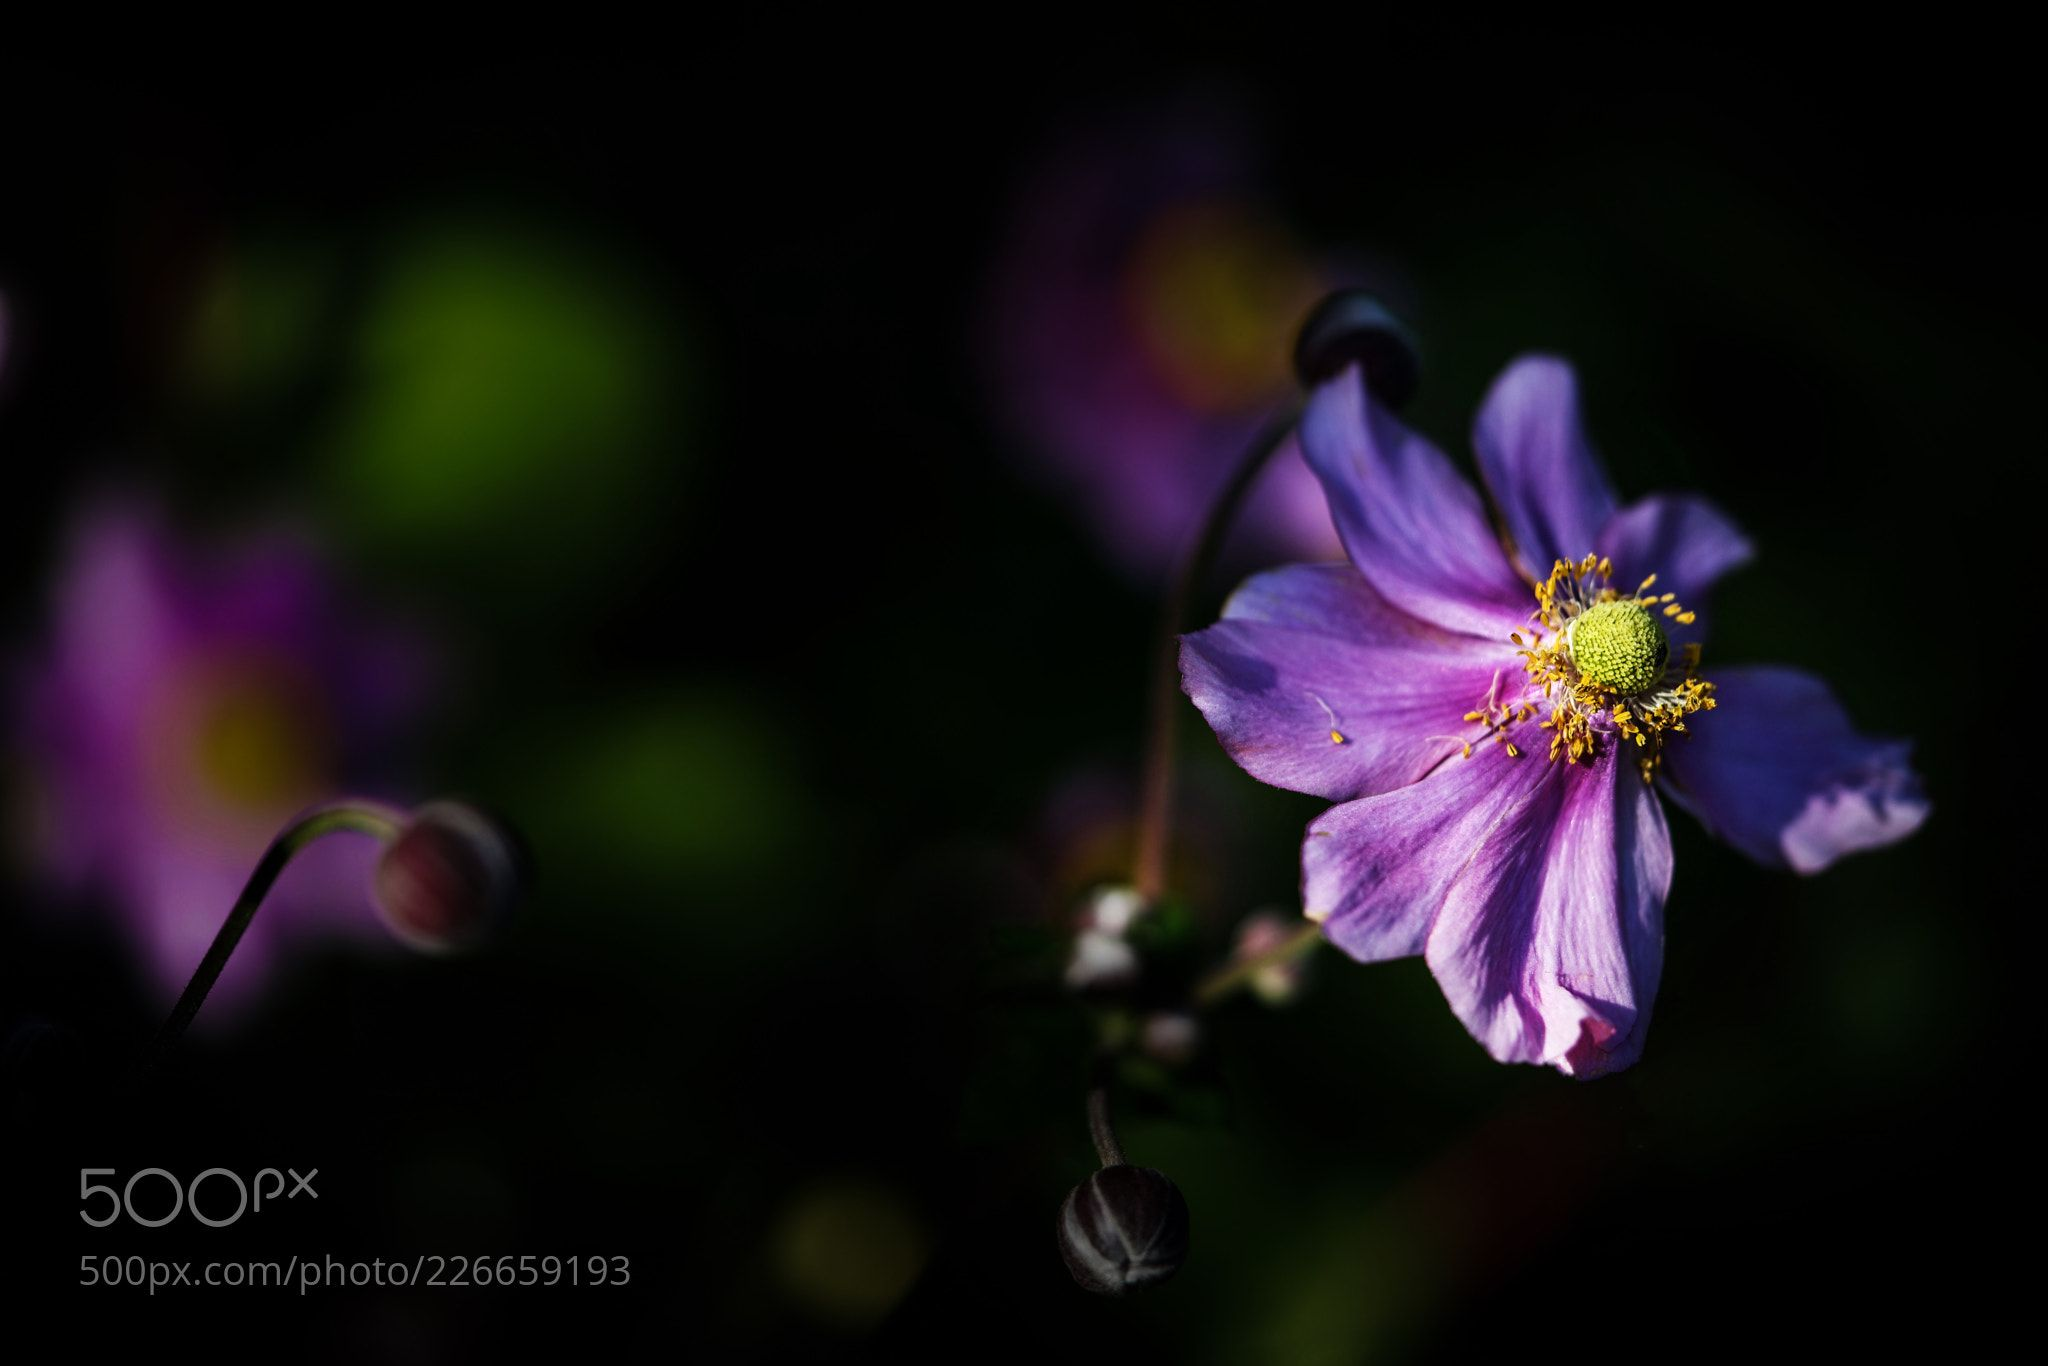 Japanese Anemone in dappled light1 (Rajesh Munglani / Cambridge / United Kingdom) #DSC-H10 #macro #photo #insect #nature